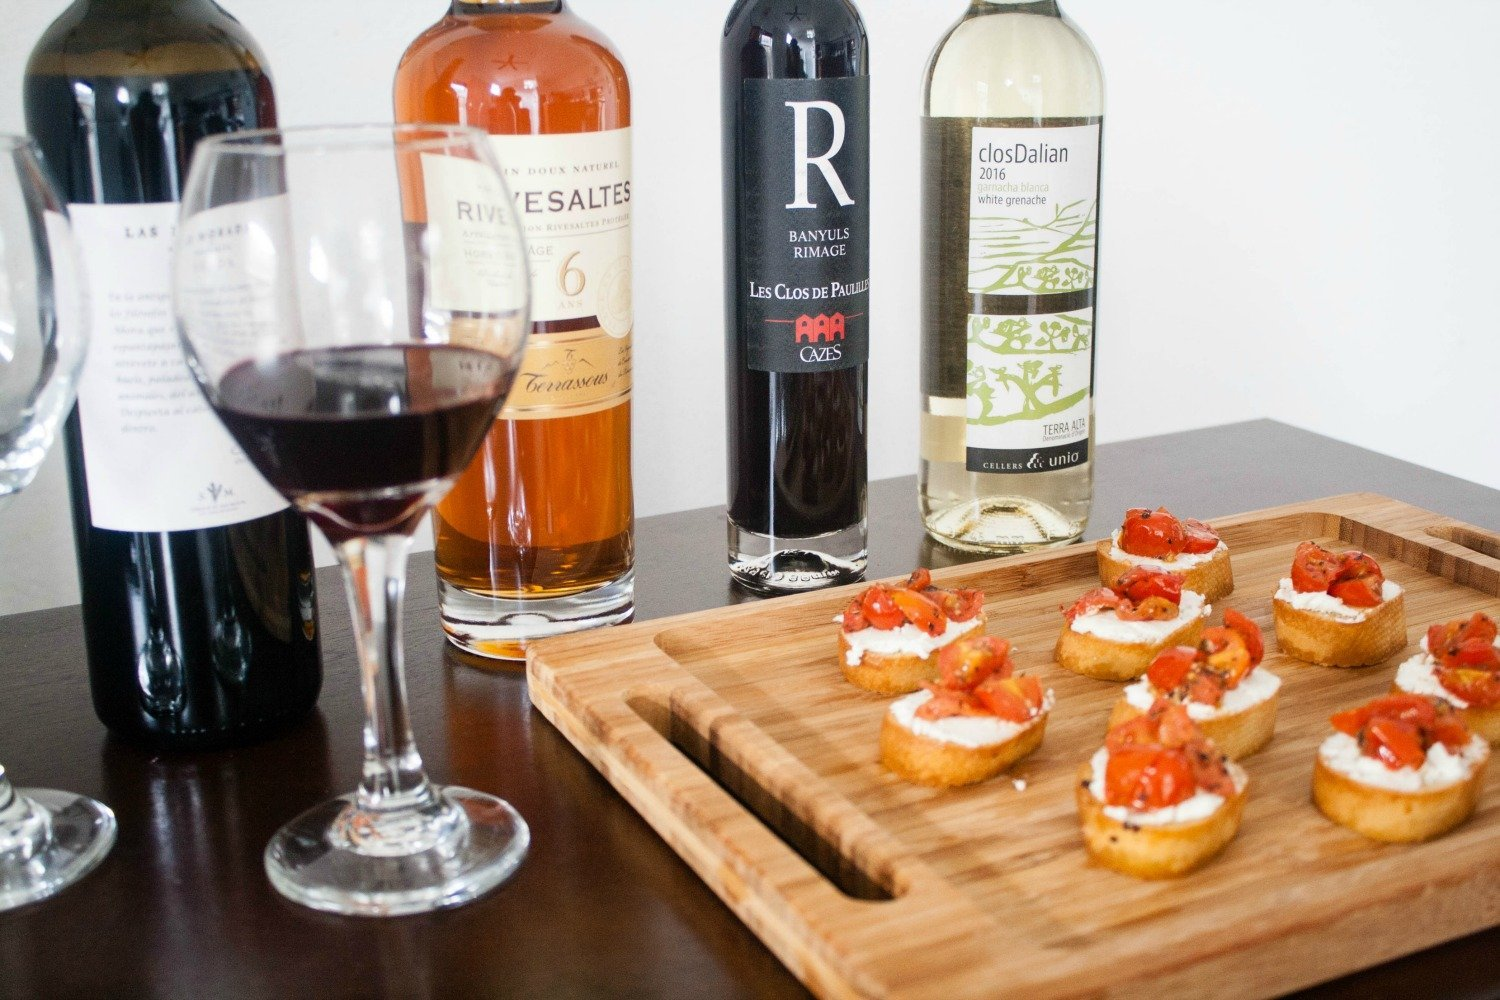 Wine and tapas night recipes and ideas